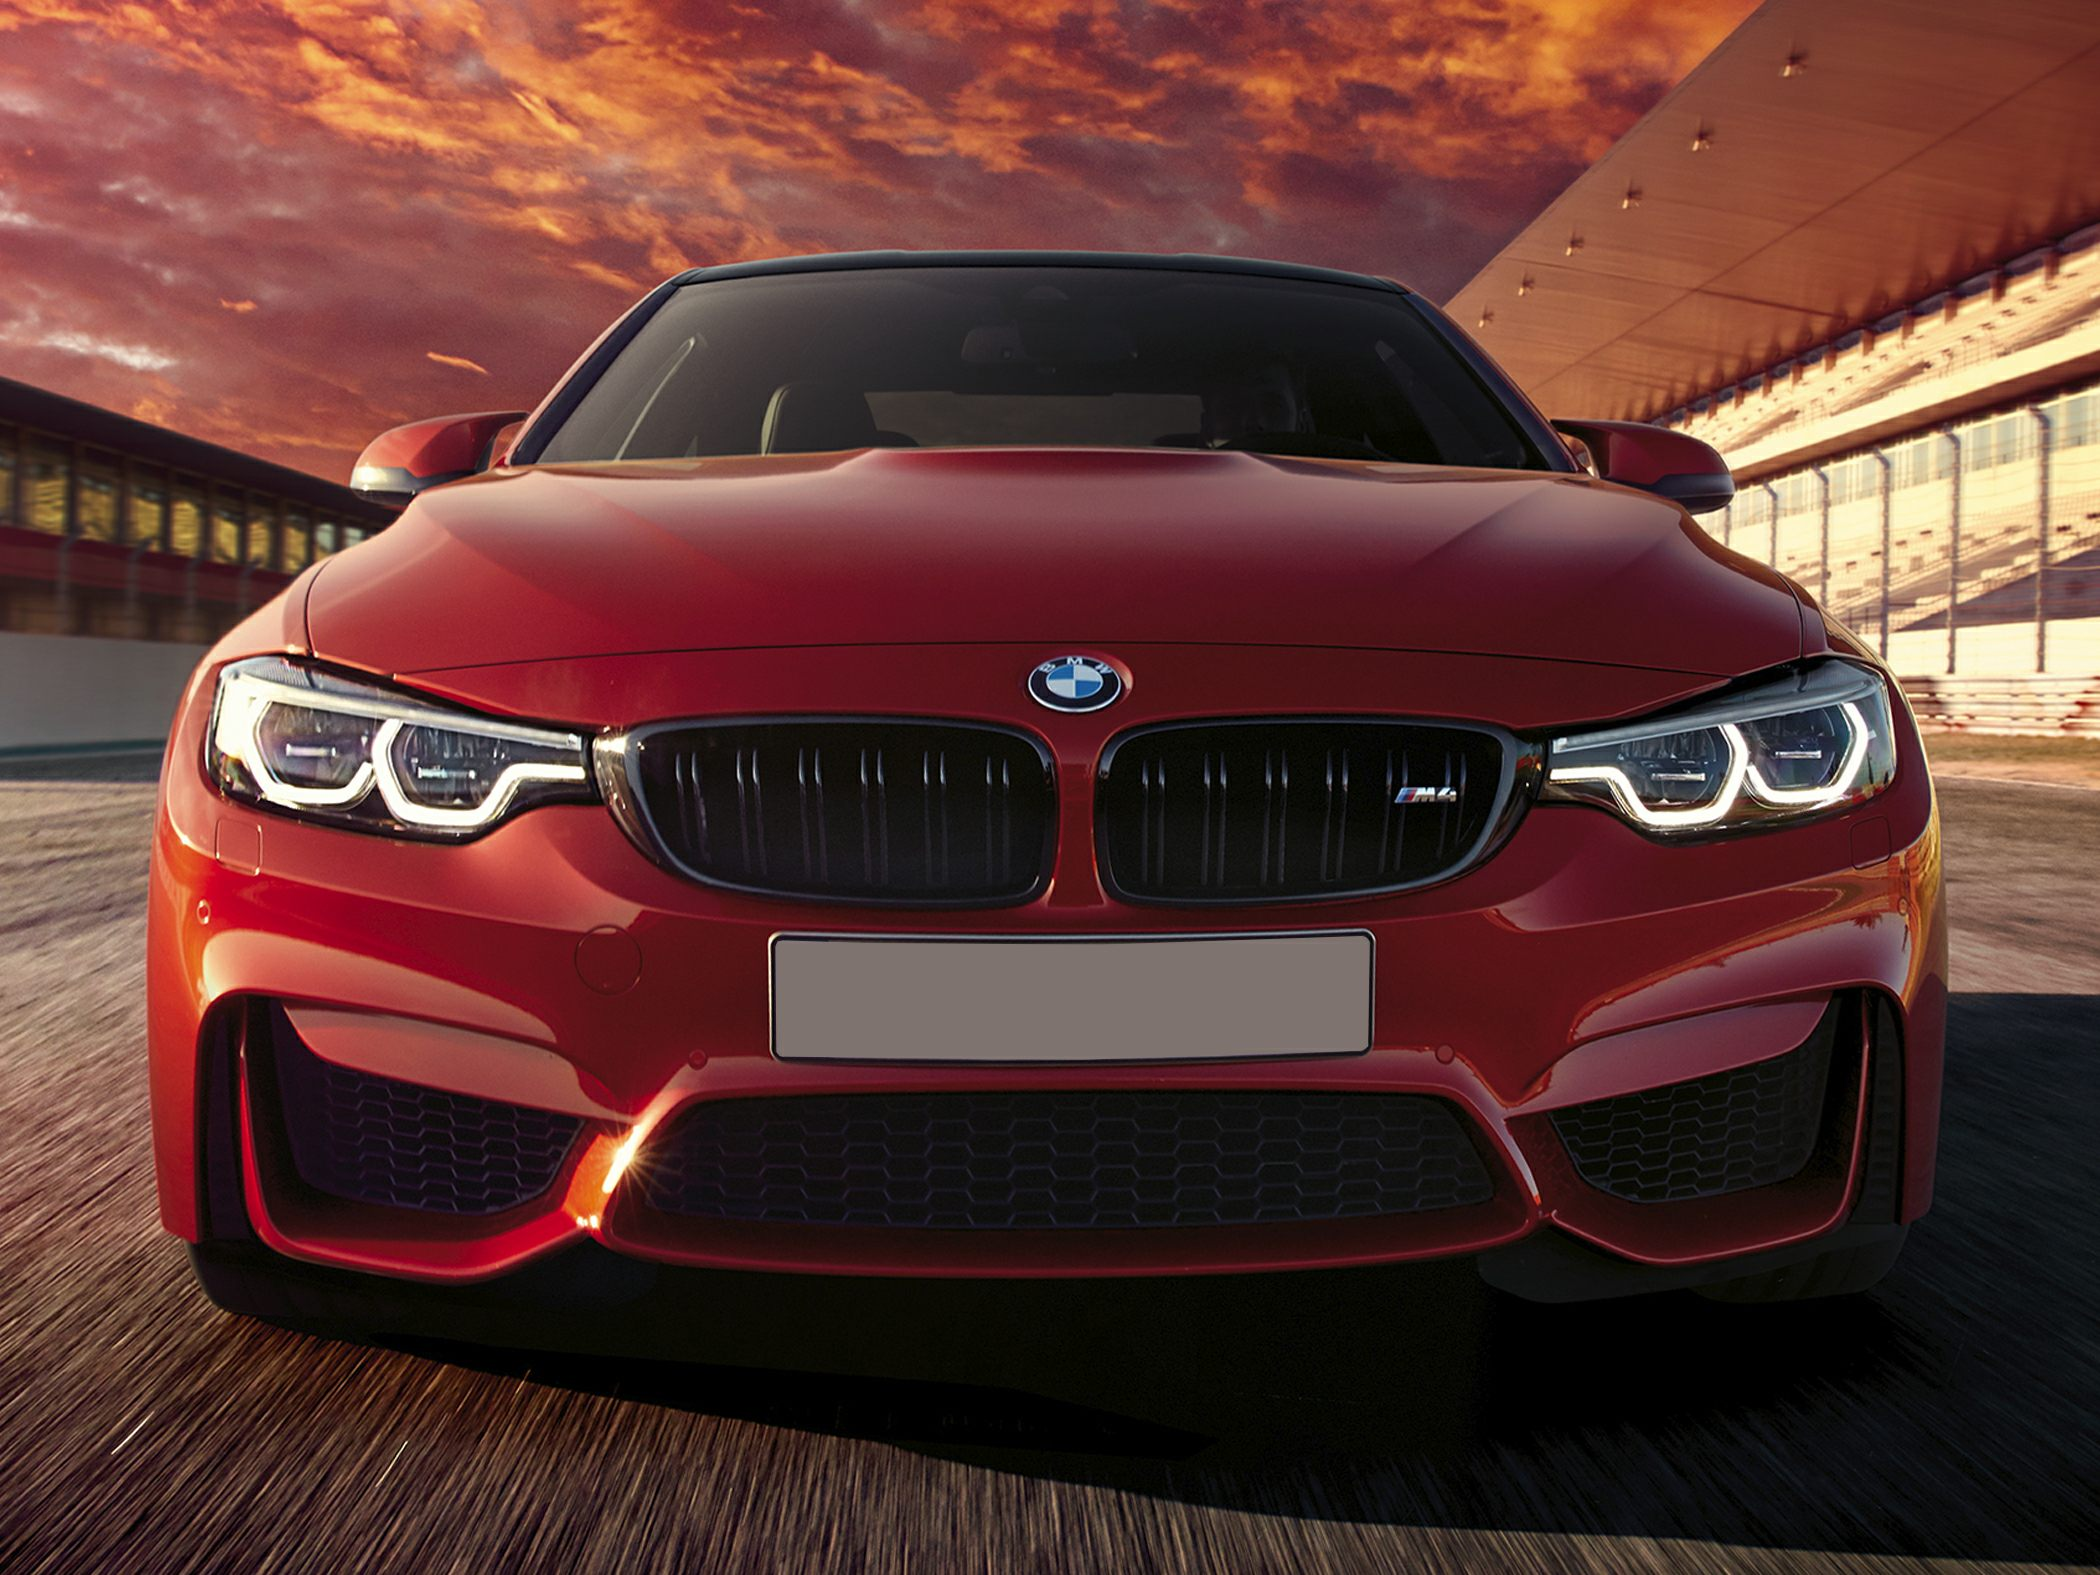 2018 bmw m4 deals prices incentives leases overview carsdirect. Black Bedroom Furniture Sets. Home Design Ideas